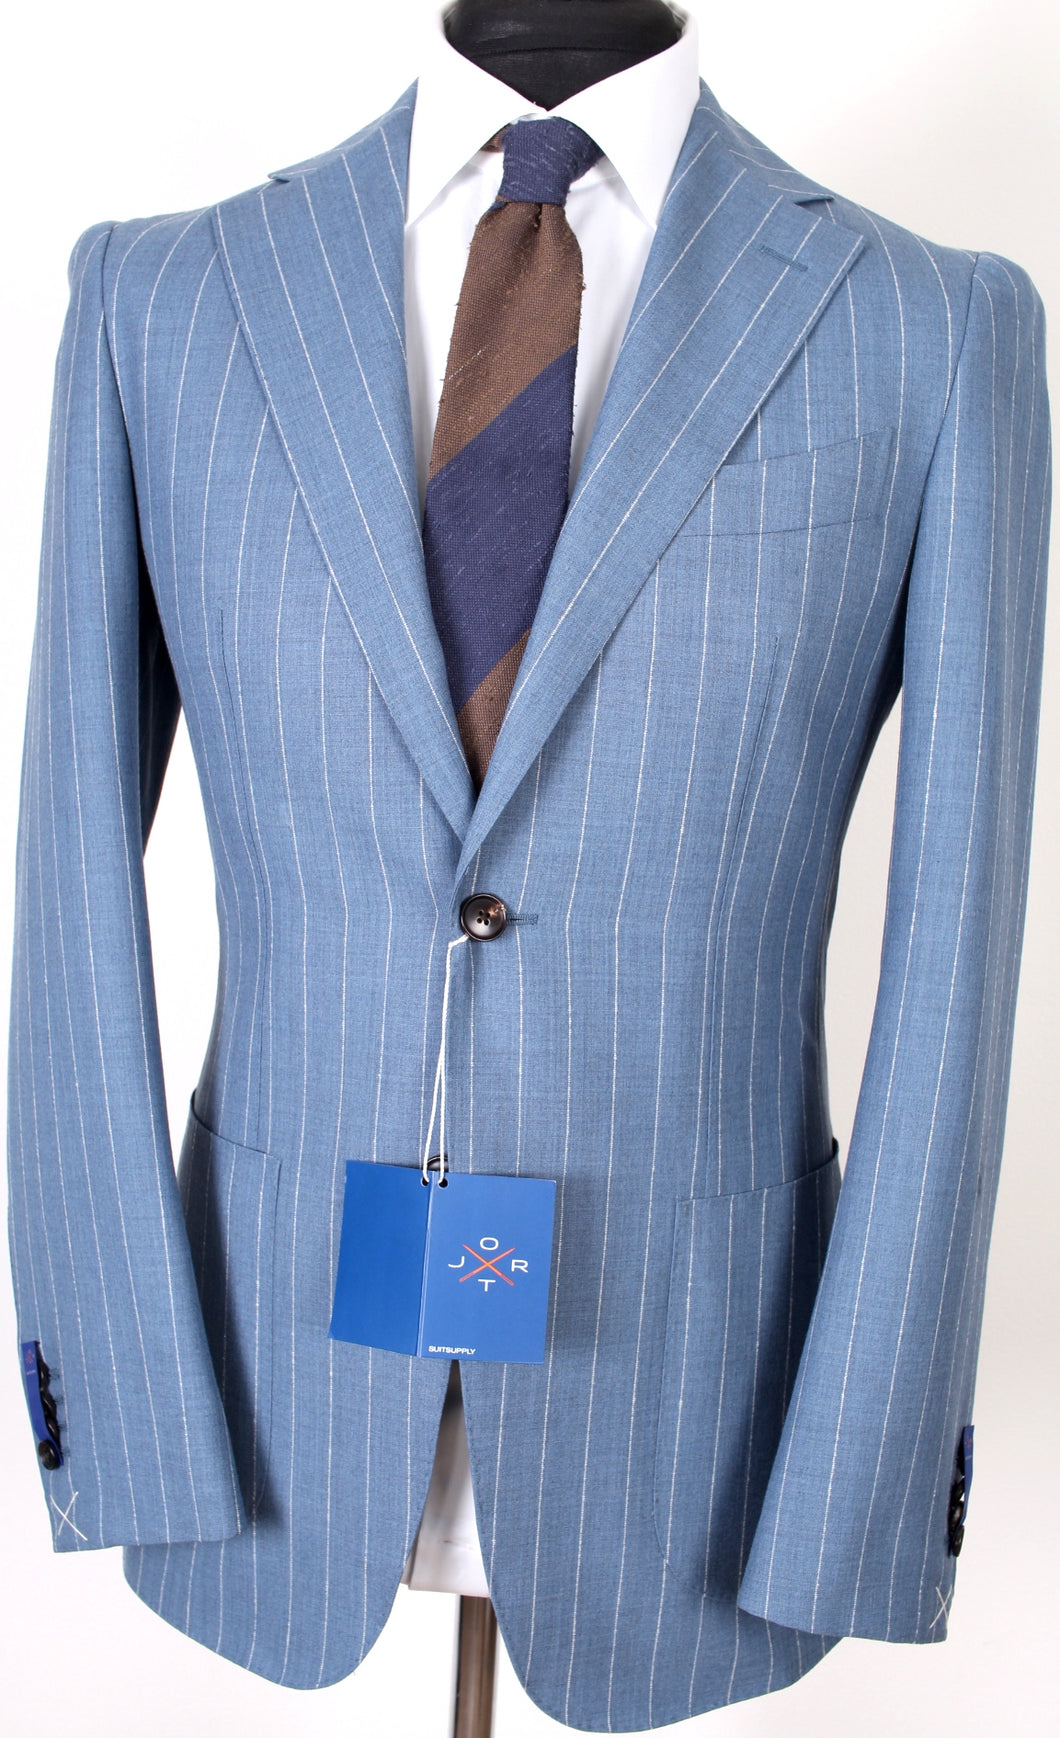 New Suitsupply JORT Light Blue Stripe 100% Wool Unlined Suit - Size 36R, 38R